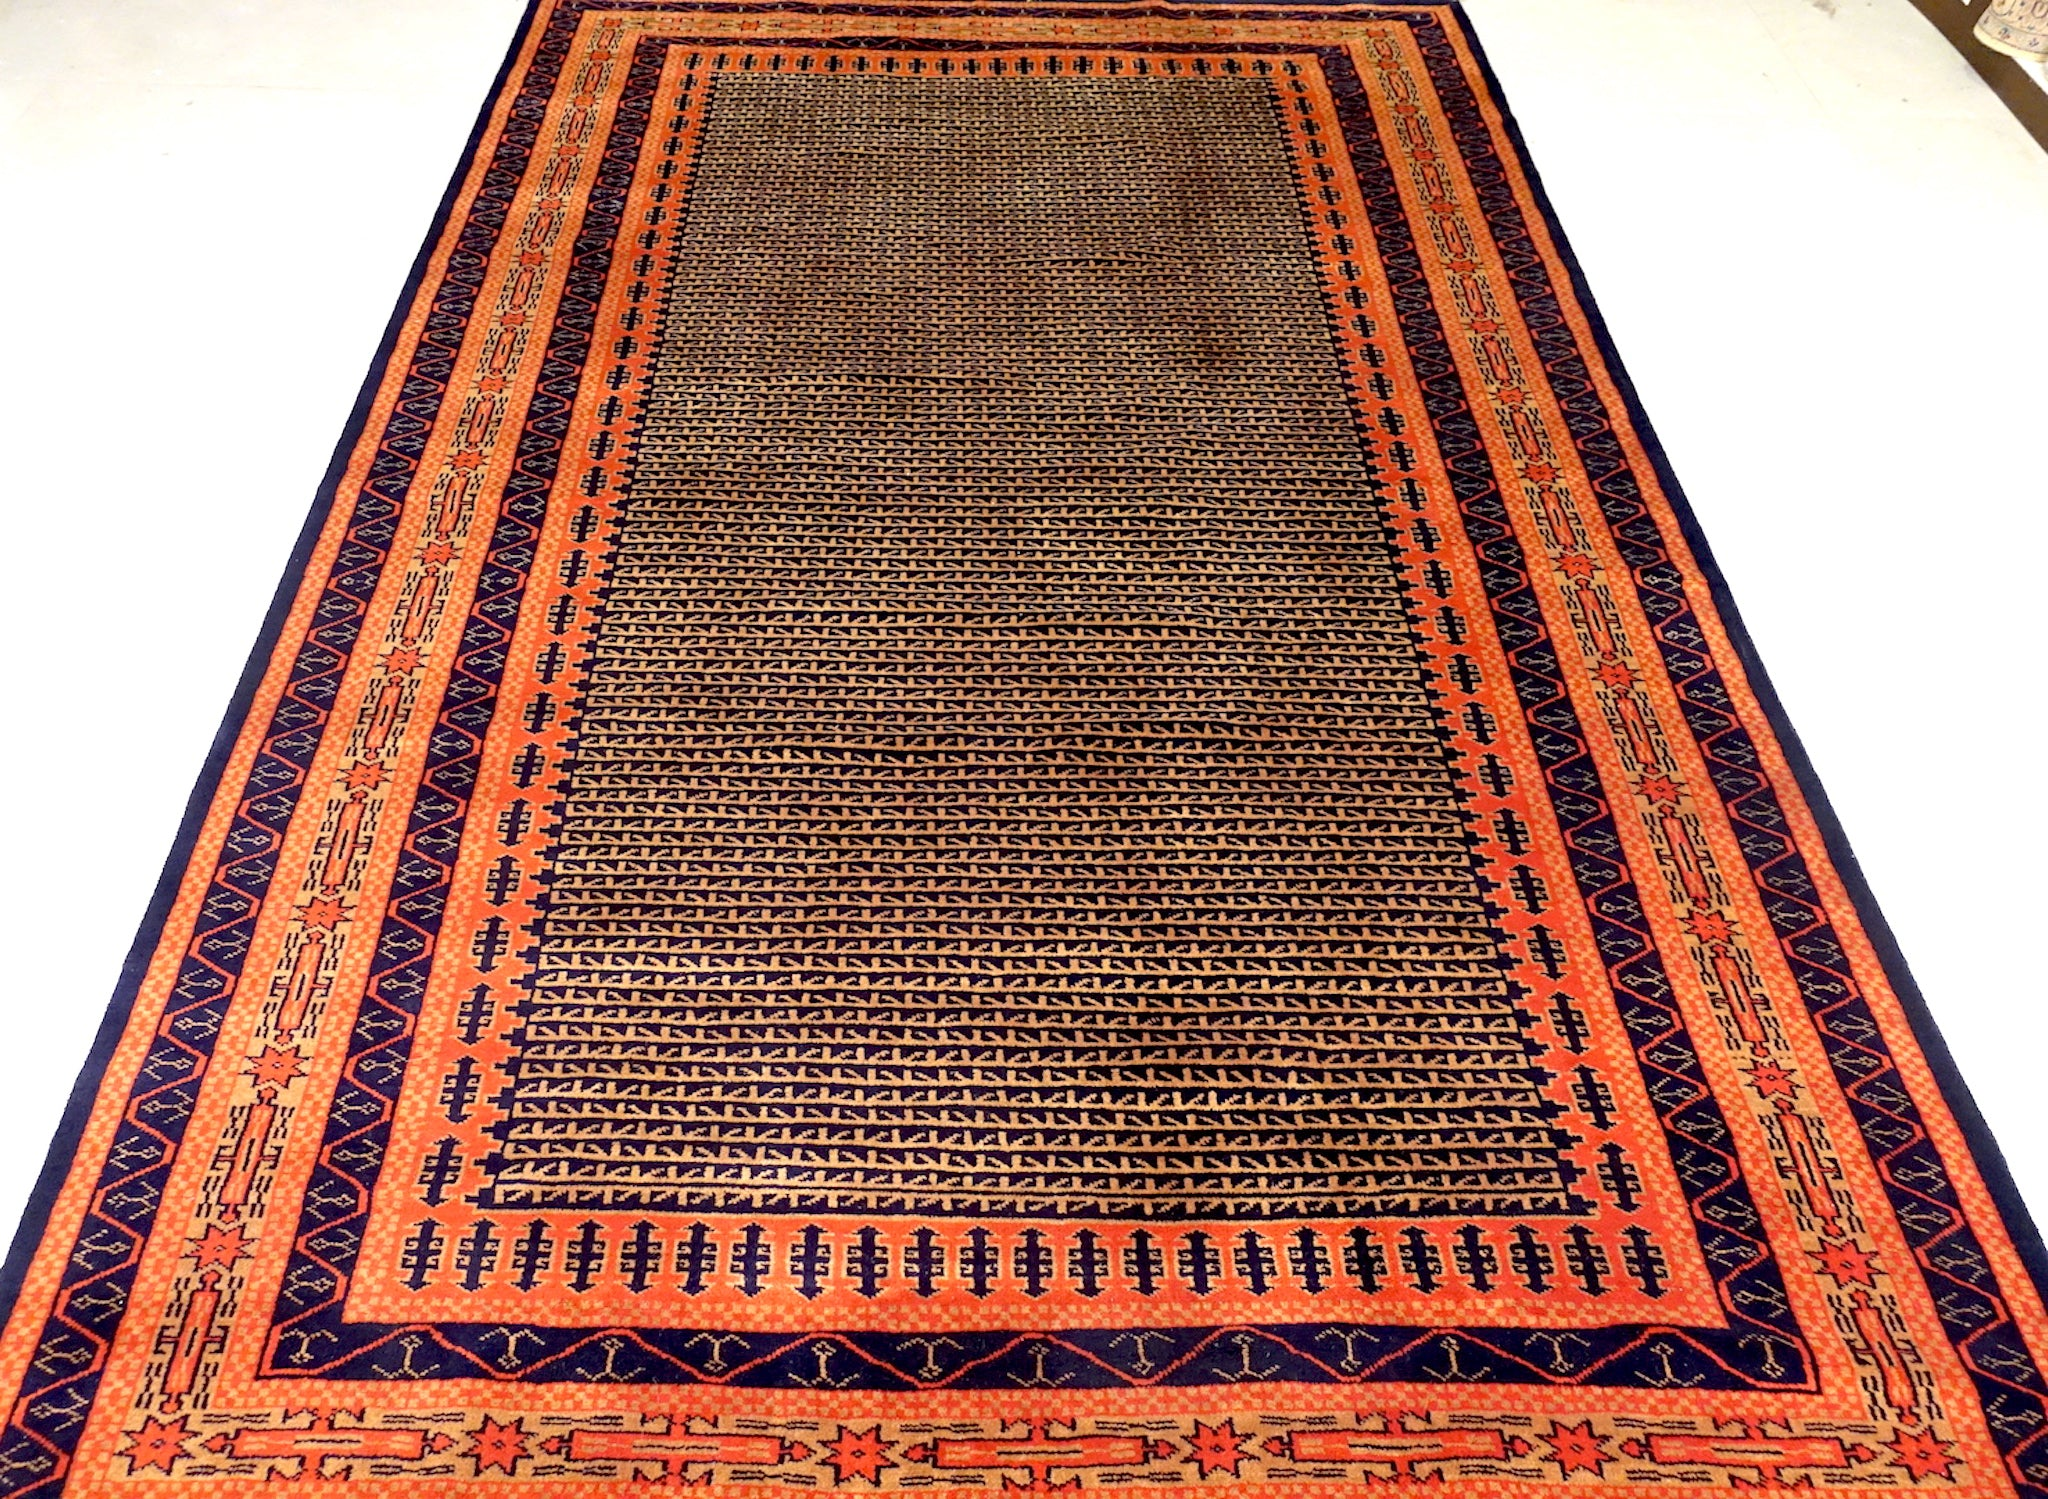 A 6 feet by 9 feet indian wool rug, the colours used on the rug are rust,brown,orange and dark blue.